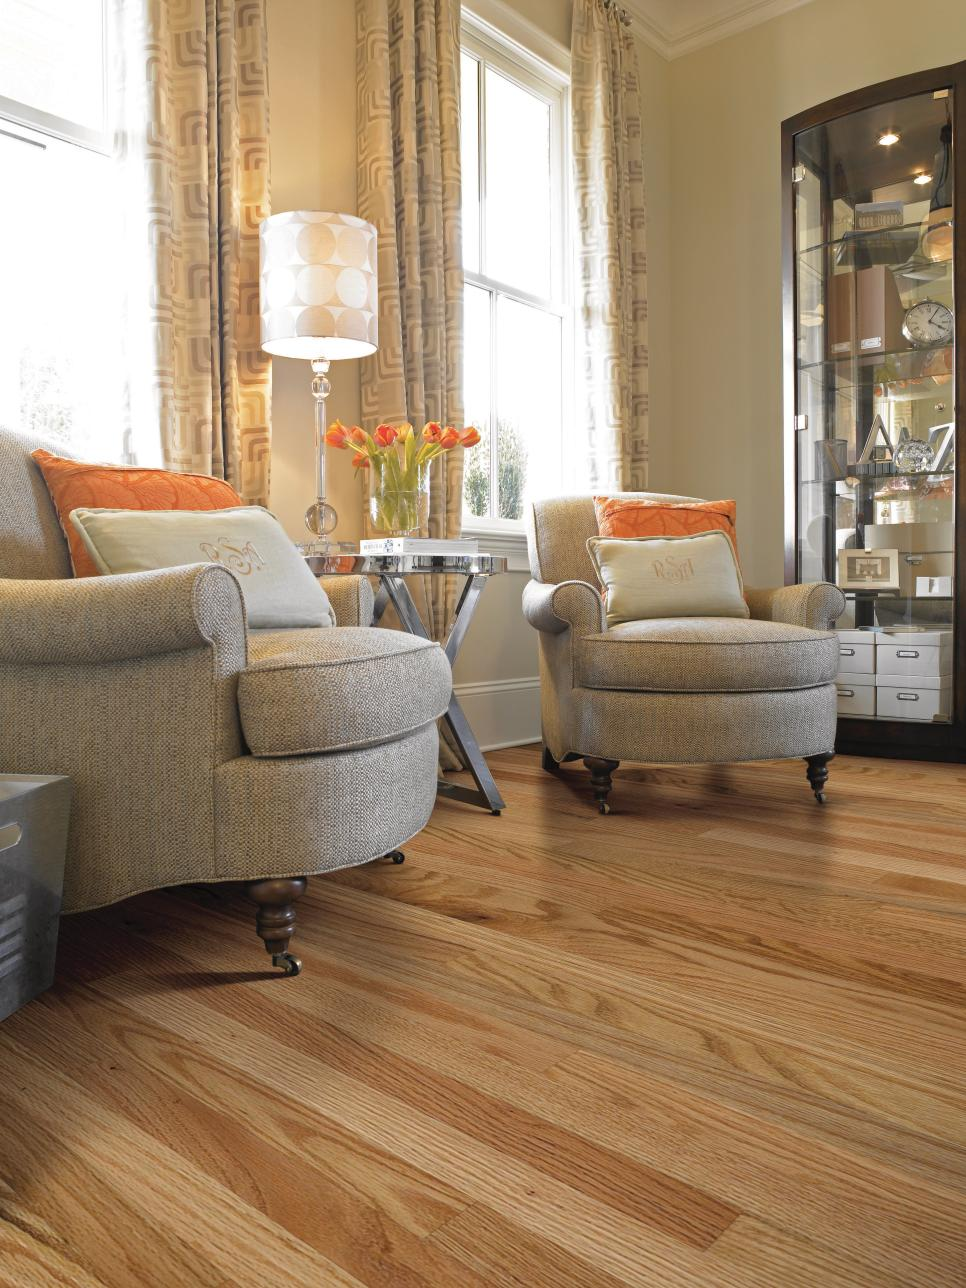 10 Stunning Hardwood Flooring Options Hgtv